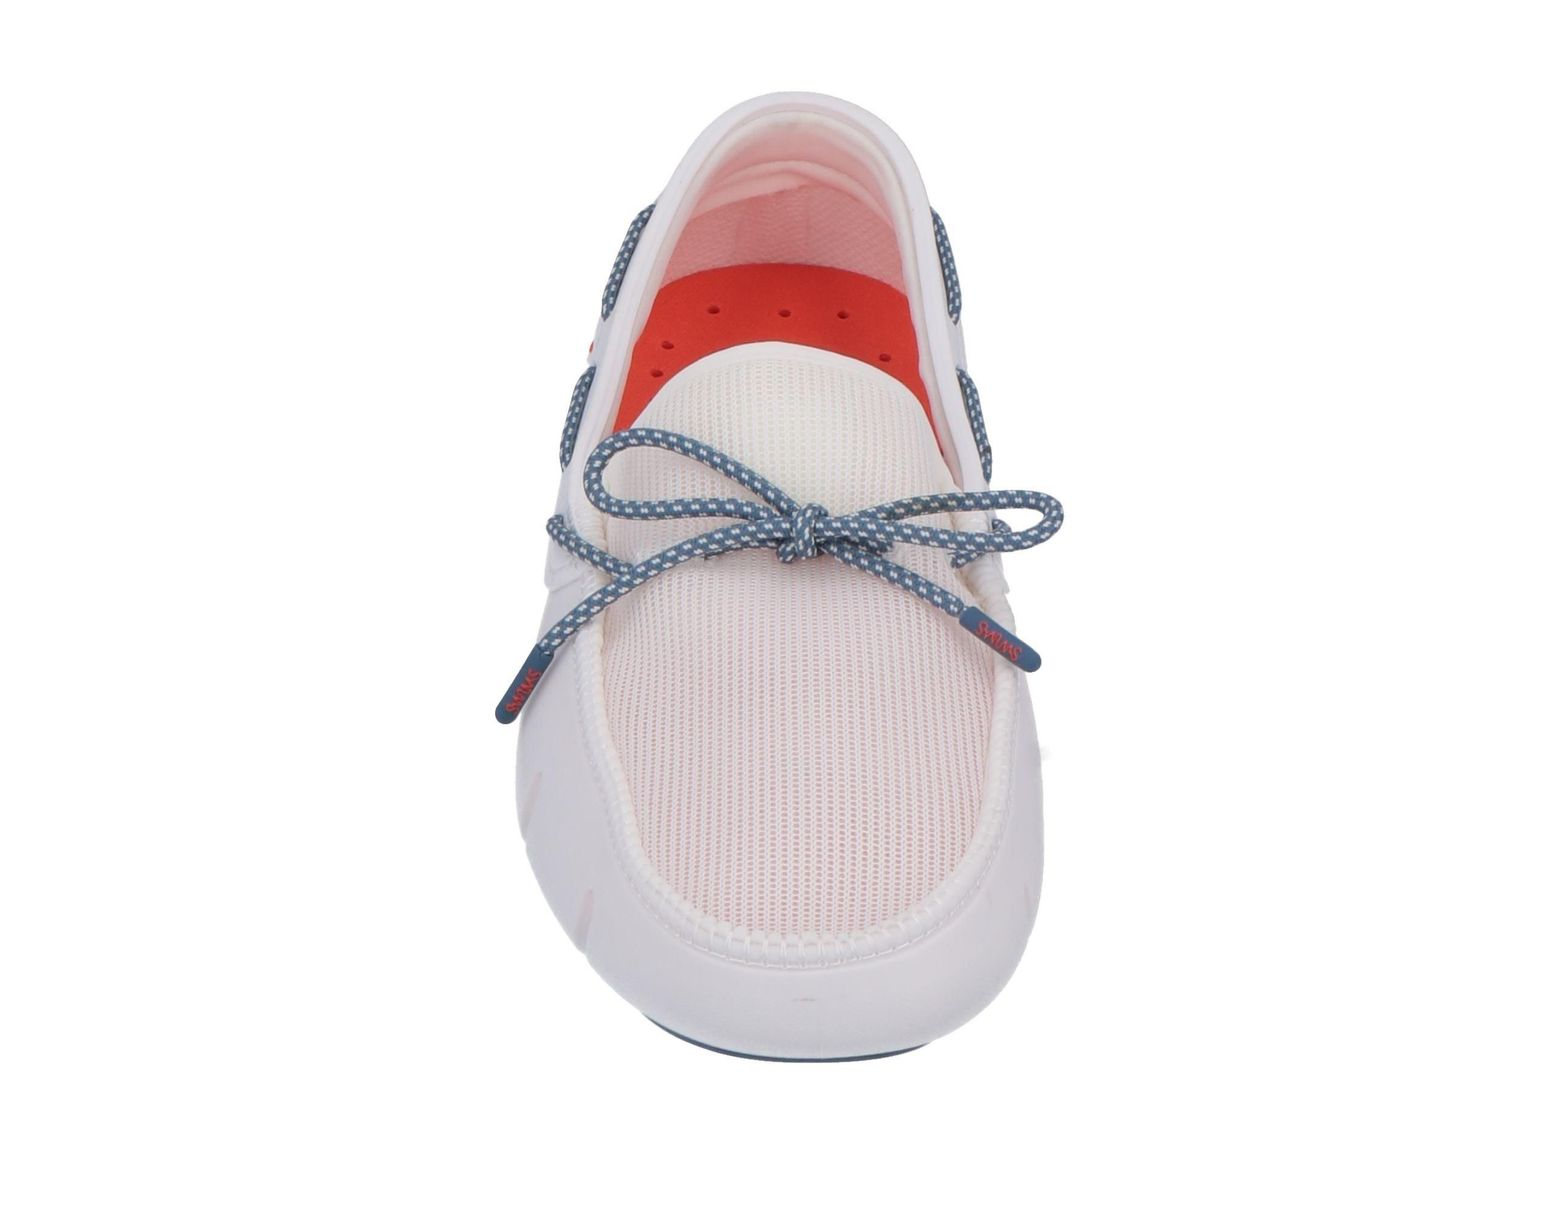 Swims Blanco Mocasines Color De Hombre Lyst tdhCsxrQ